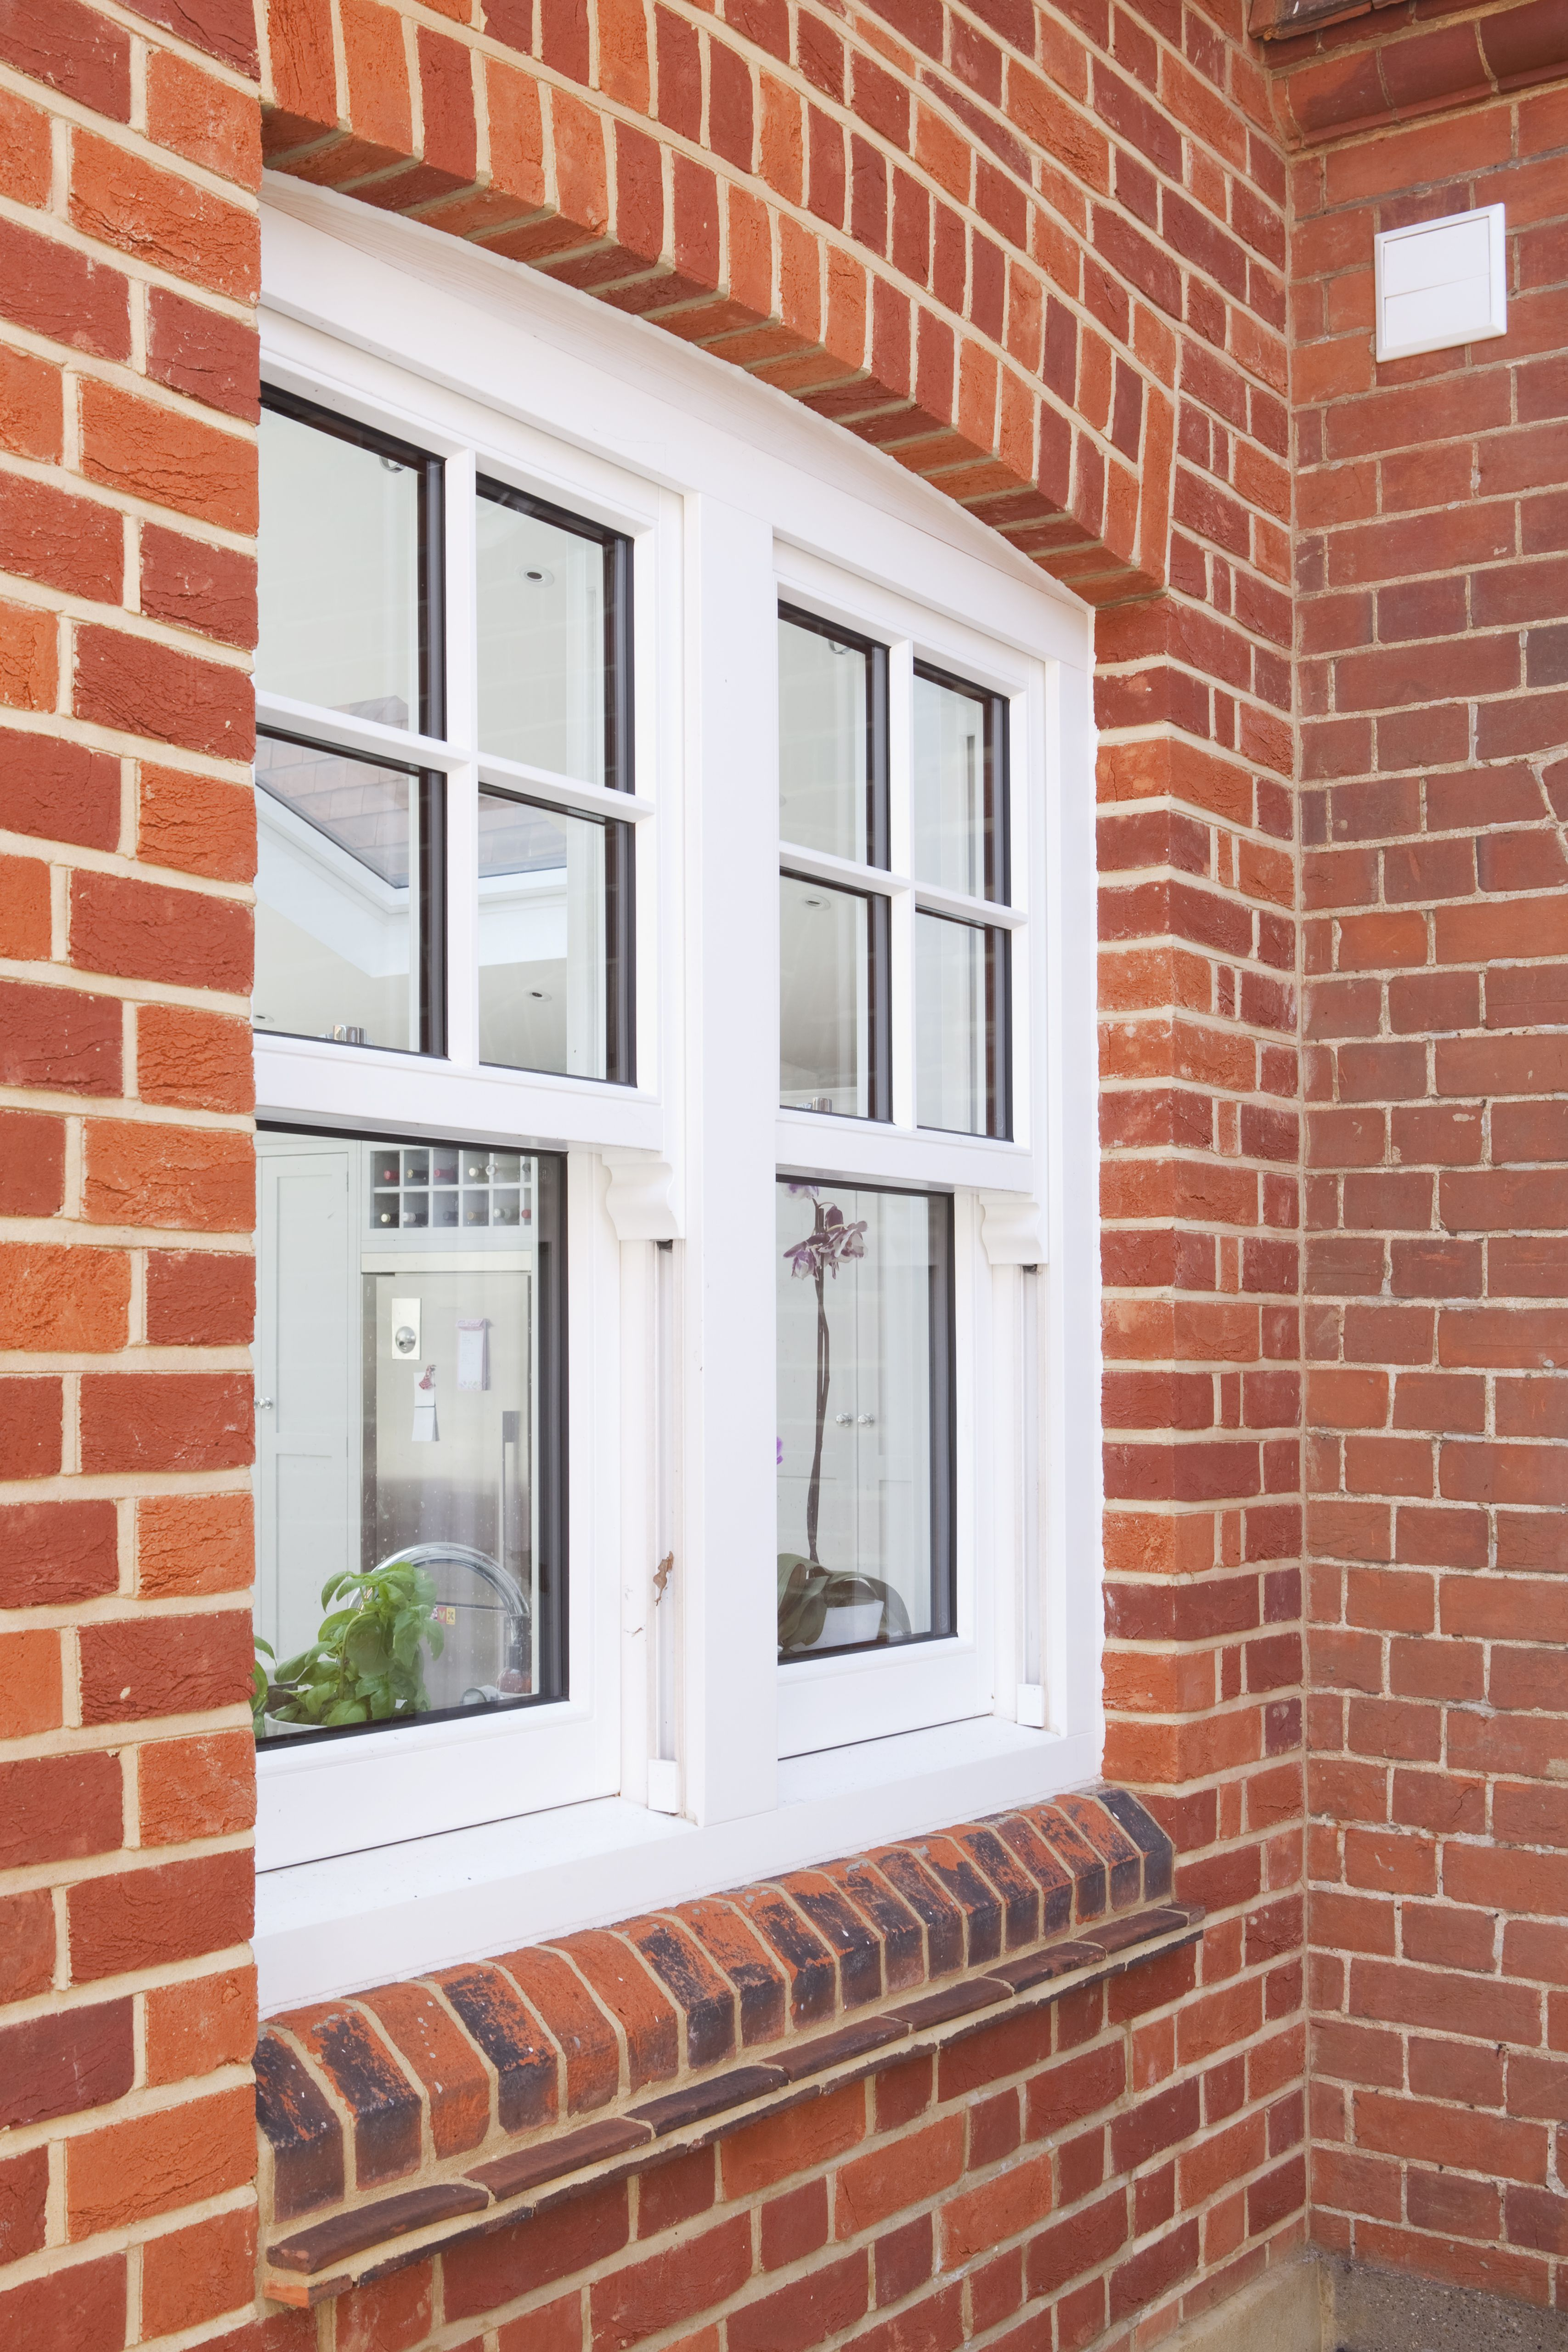 New traditional style double glazed Upvc window to new extension in ...